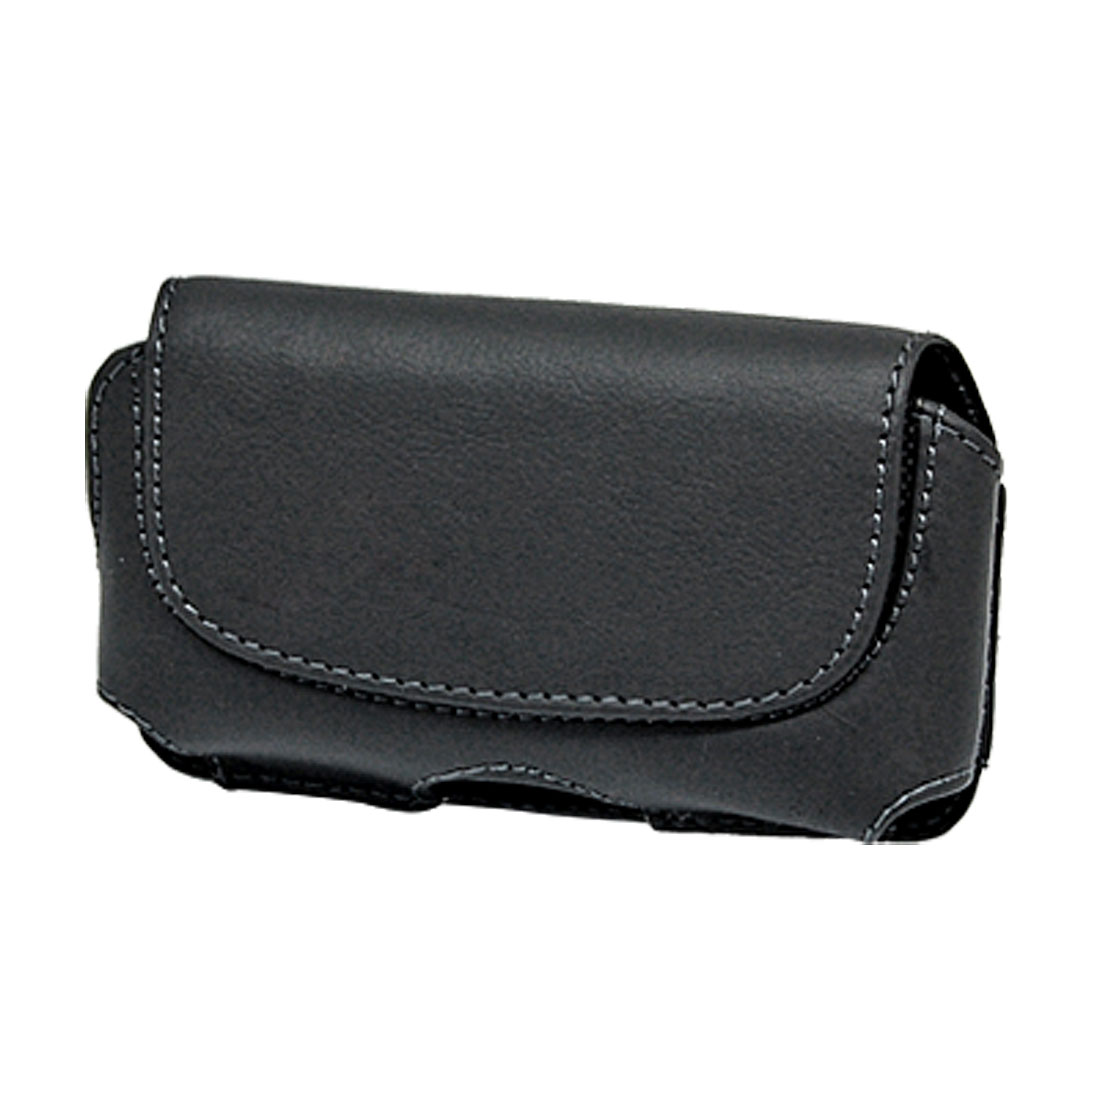 Black Leather Case Pouch with Belt Clip for Apple iPhone 3G